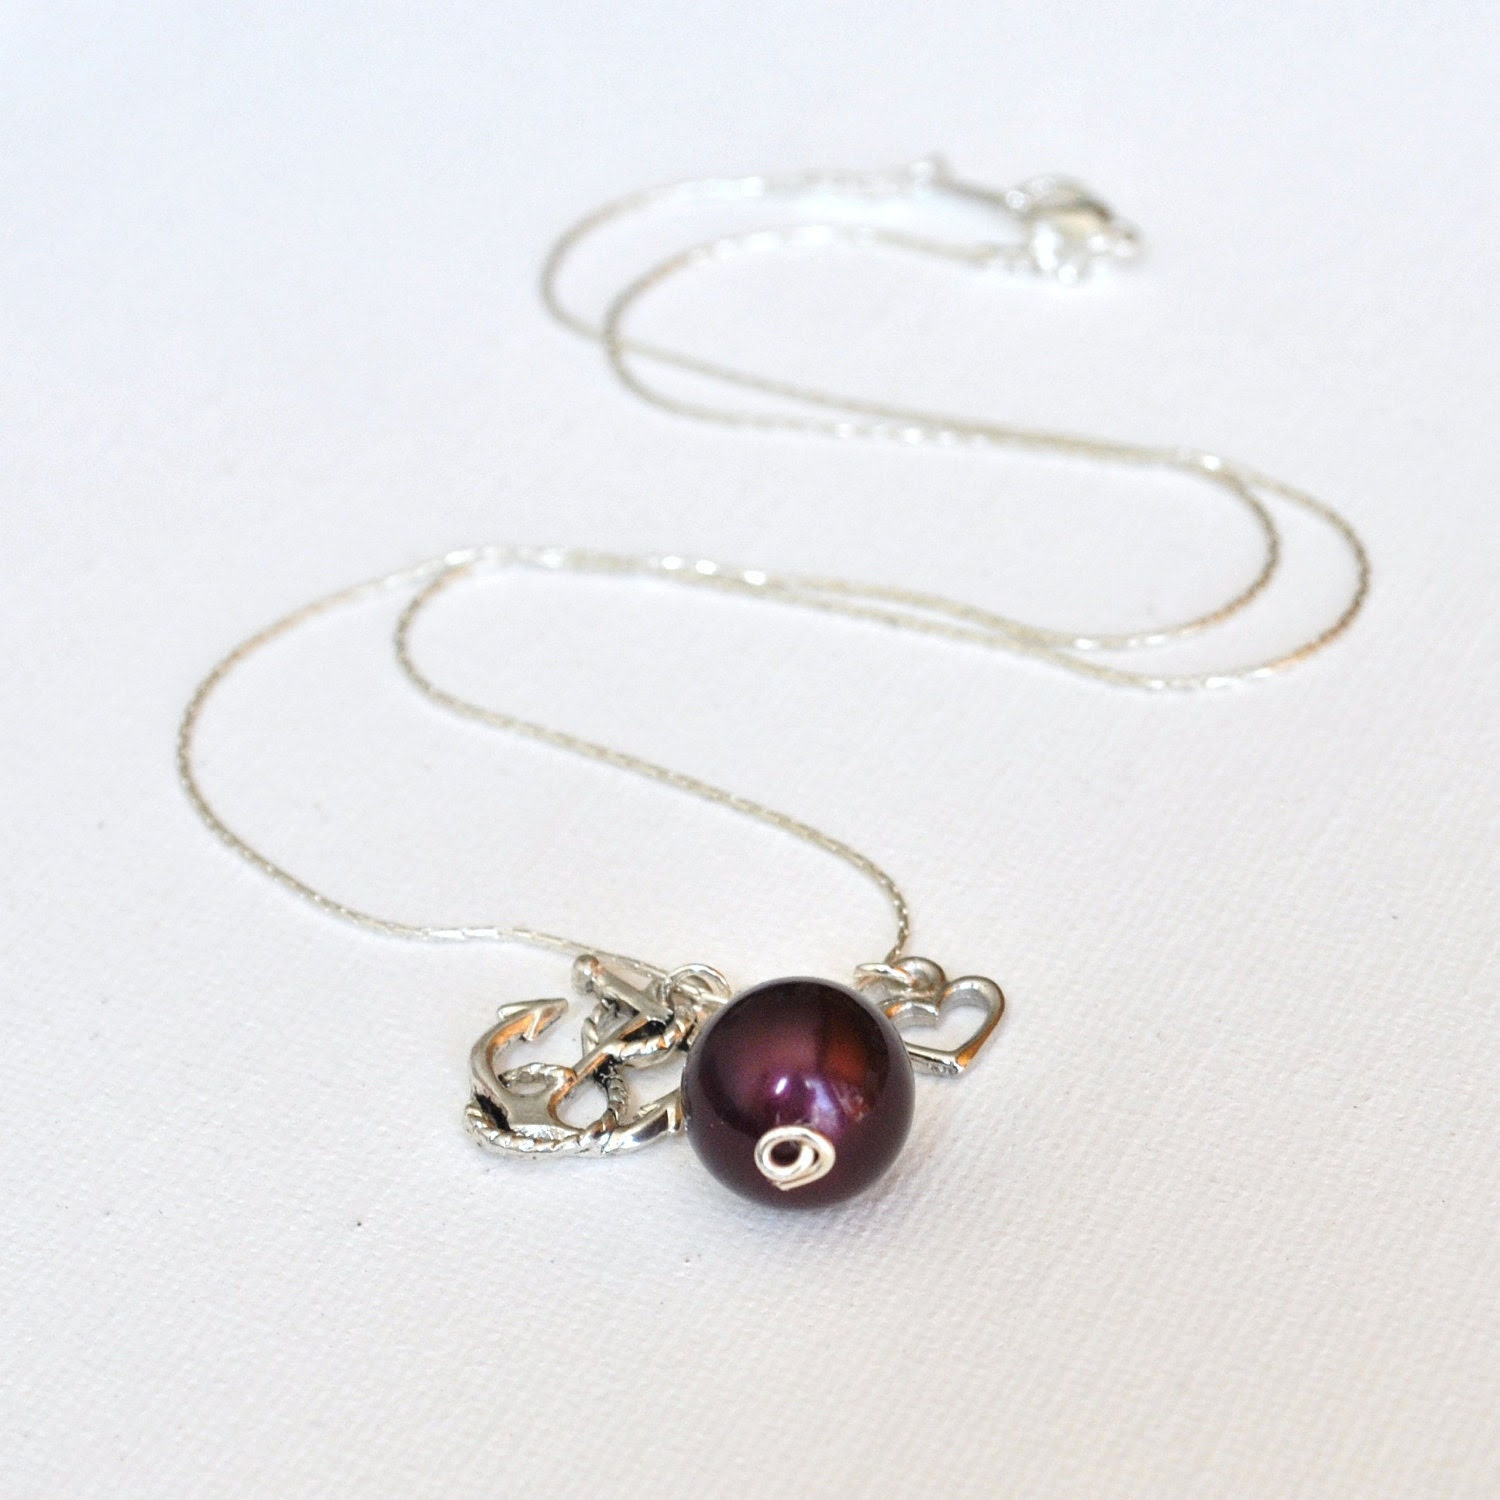 Anchor, Burgundy Pearl, and Heart - A Sailor's Love Necklace